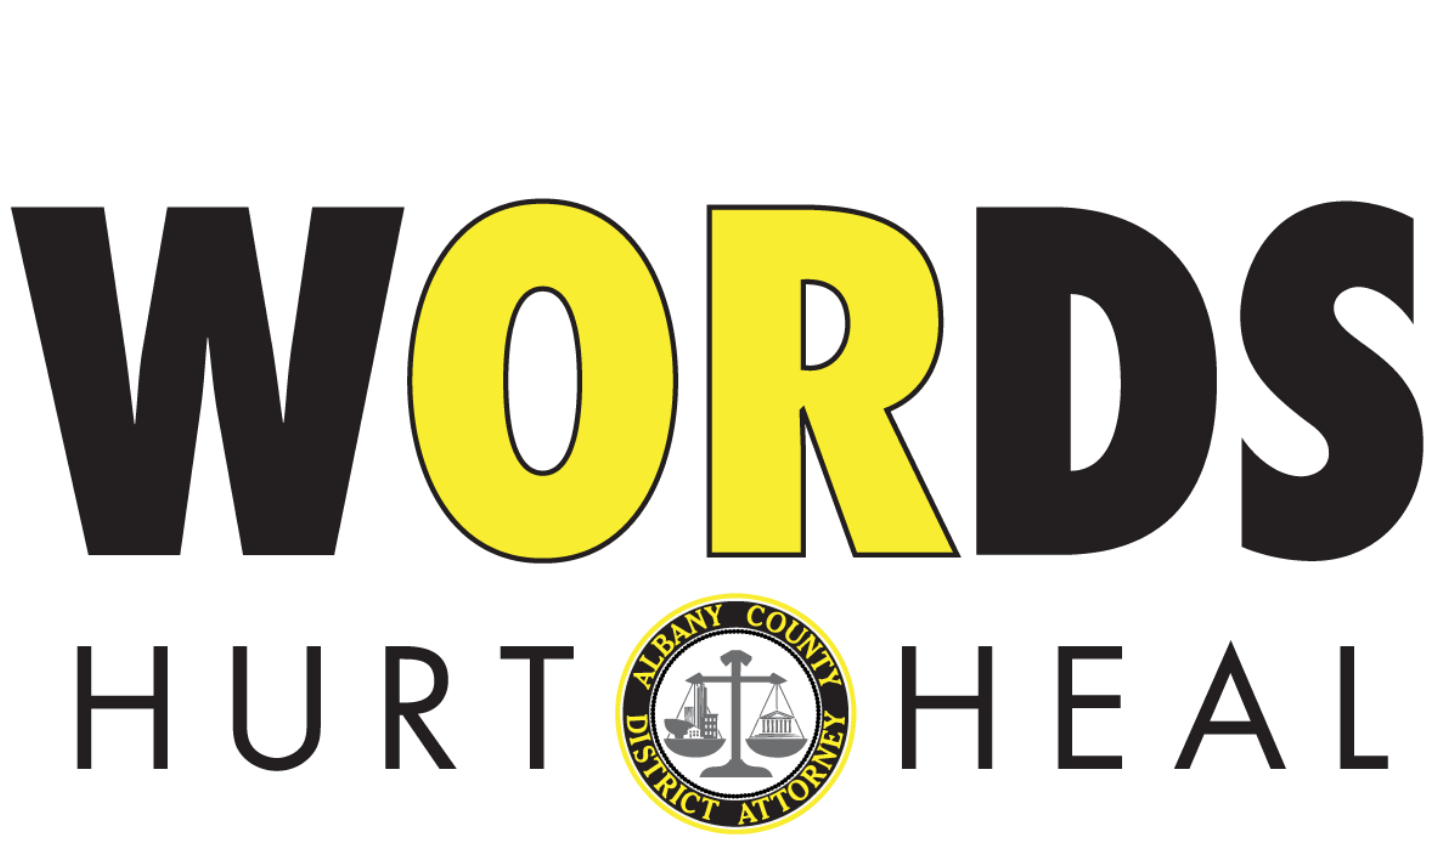 WORDS - Albany County DA's Office